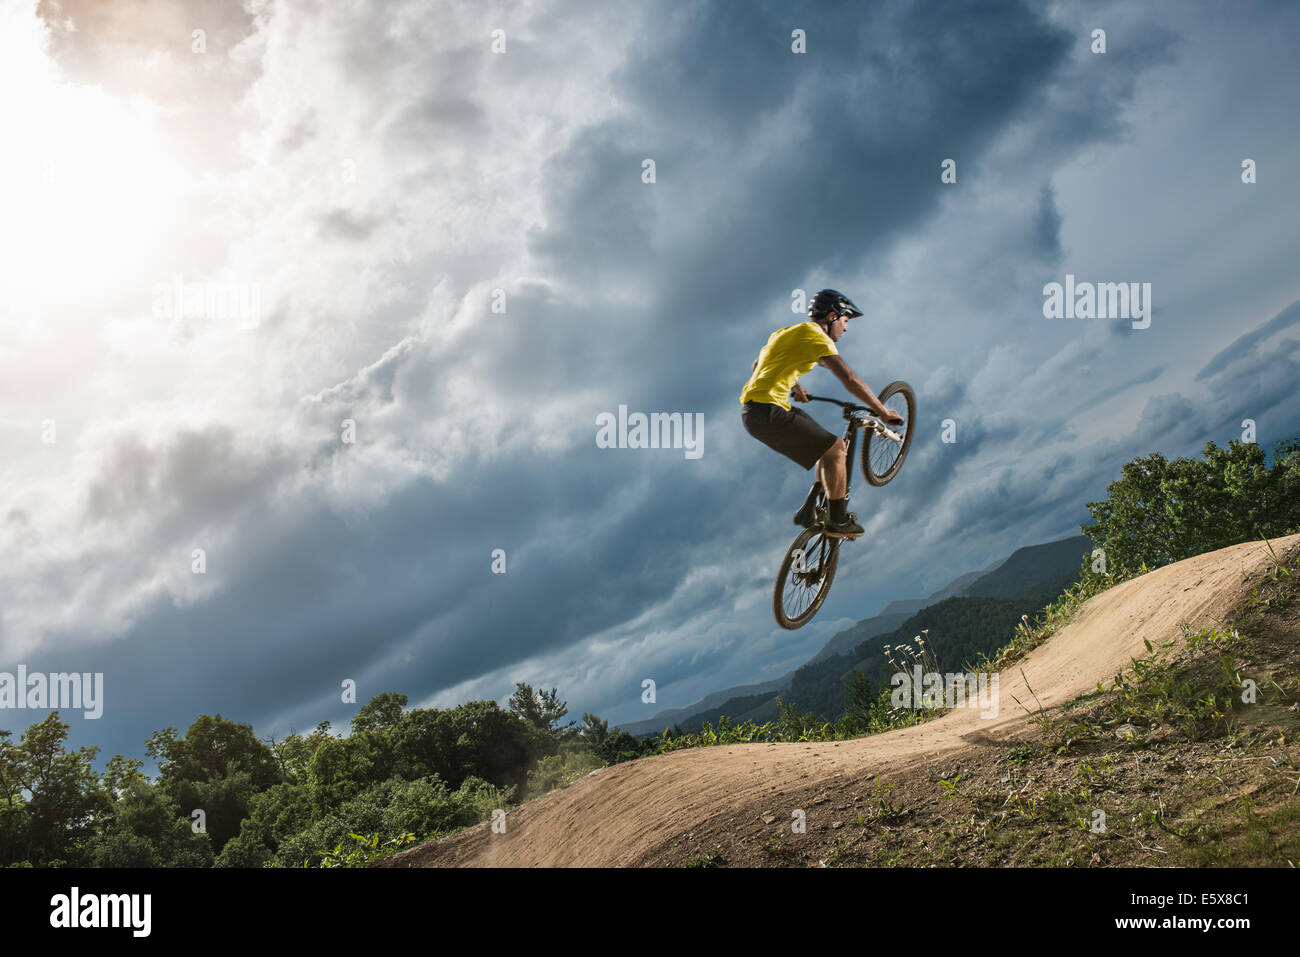 Young male mountain biker jumping mid air on rural pump track - Stock Image